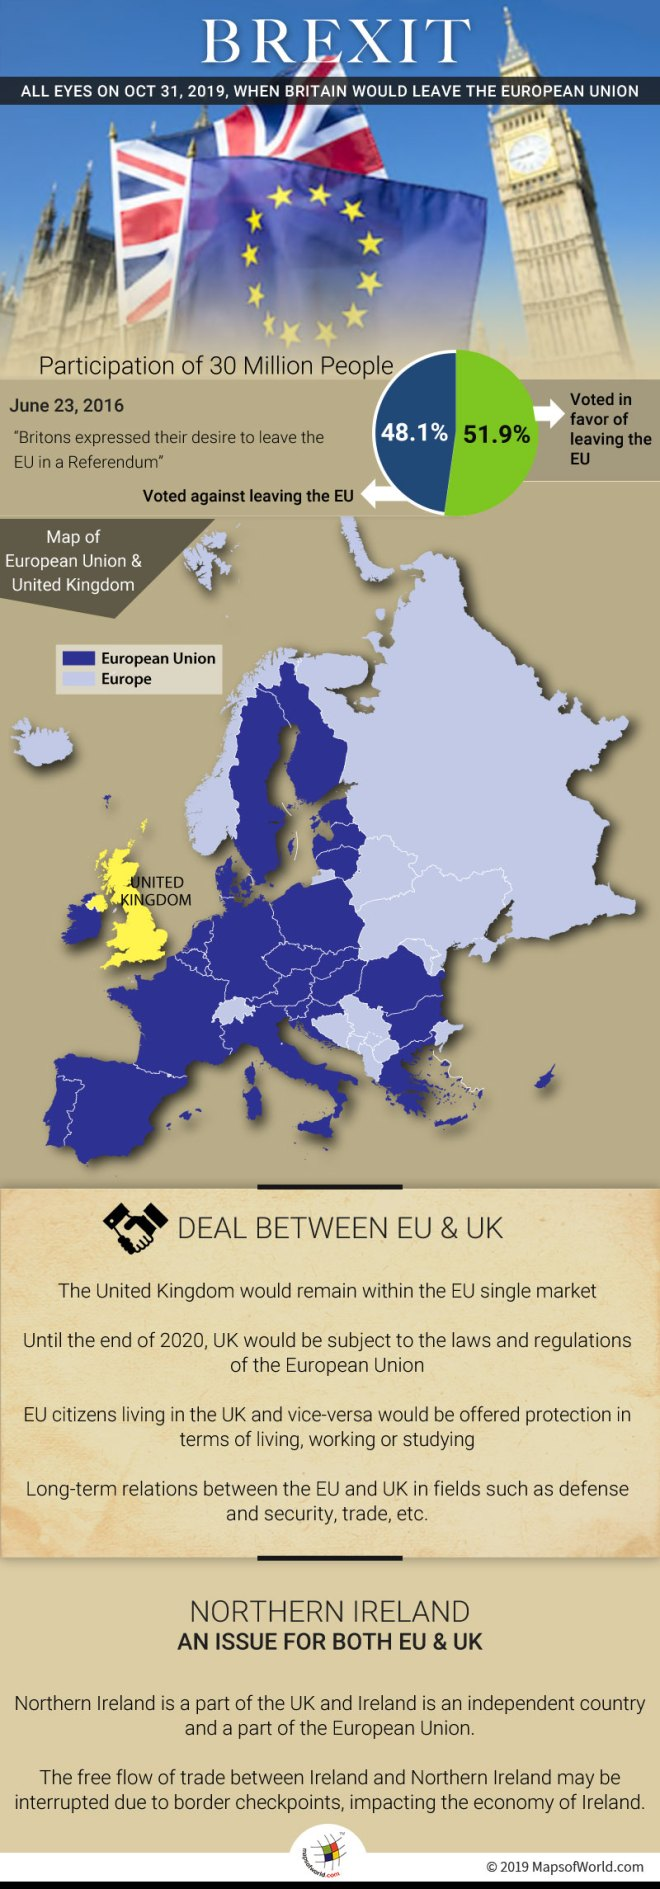 Infographic Showing Current Situation of Brexit